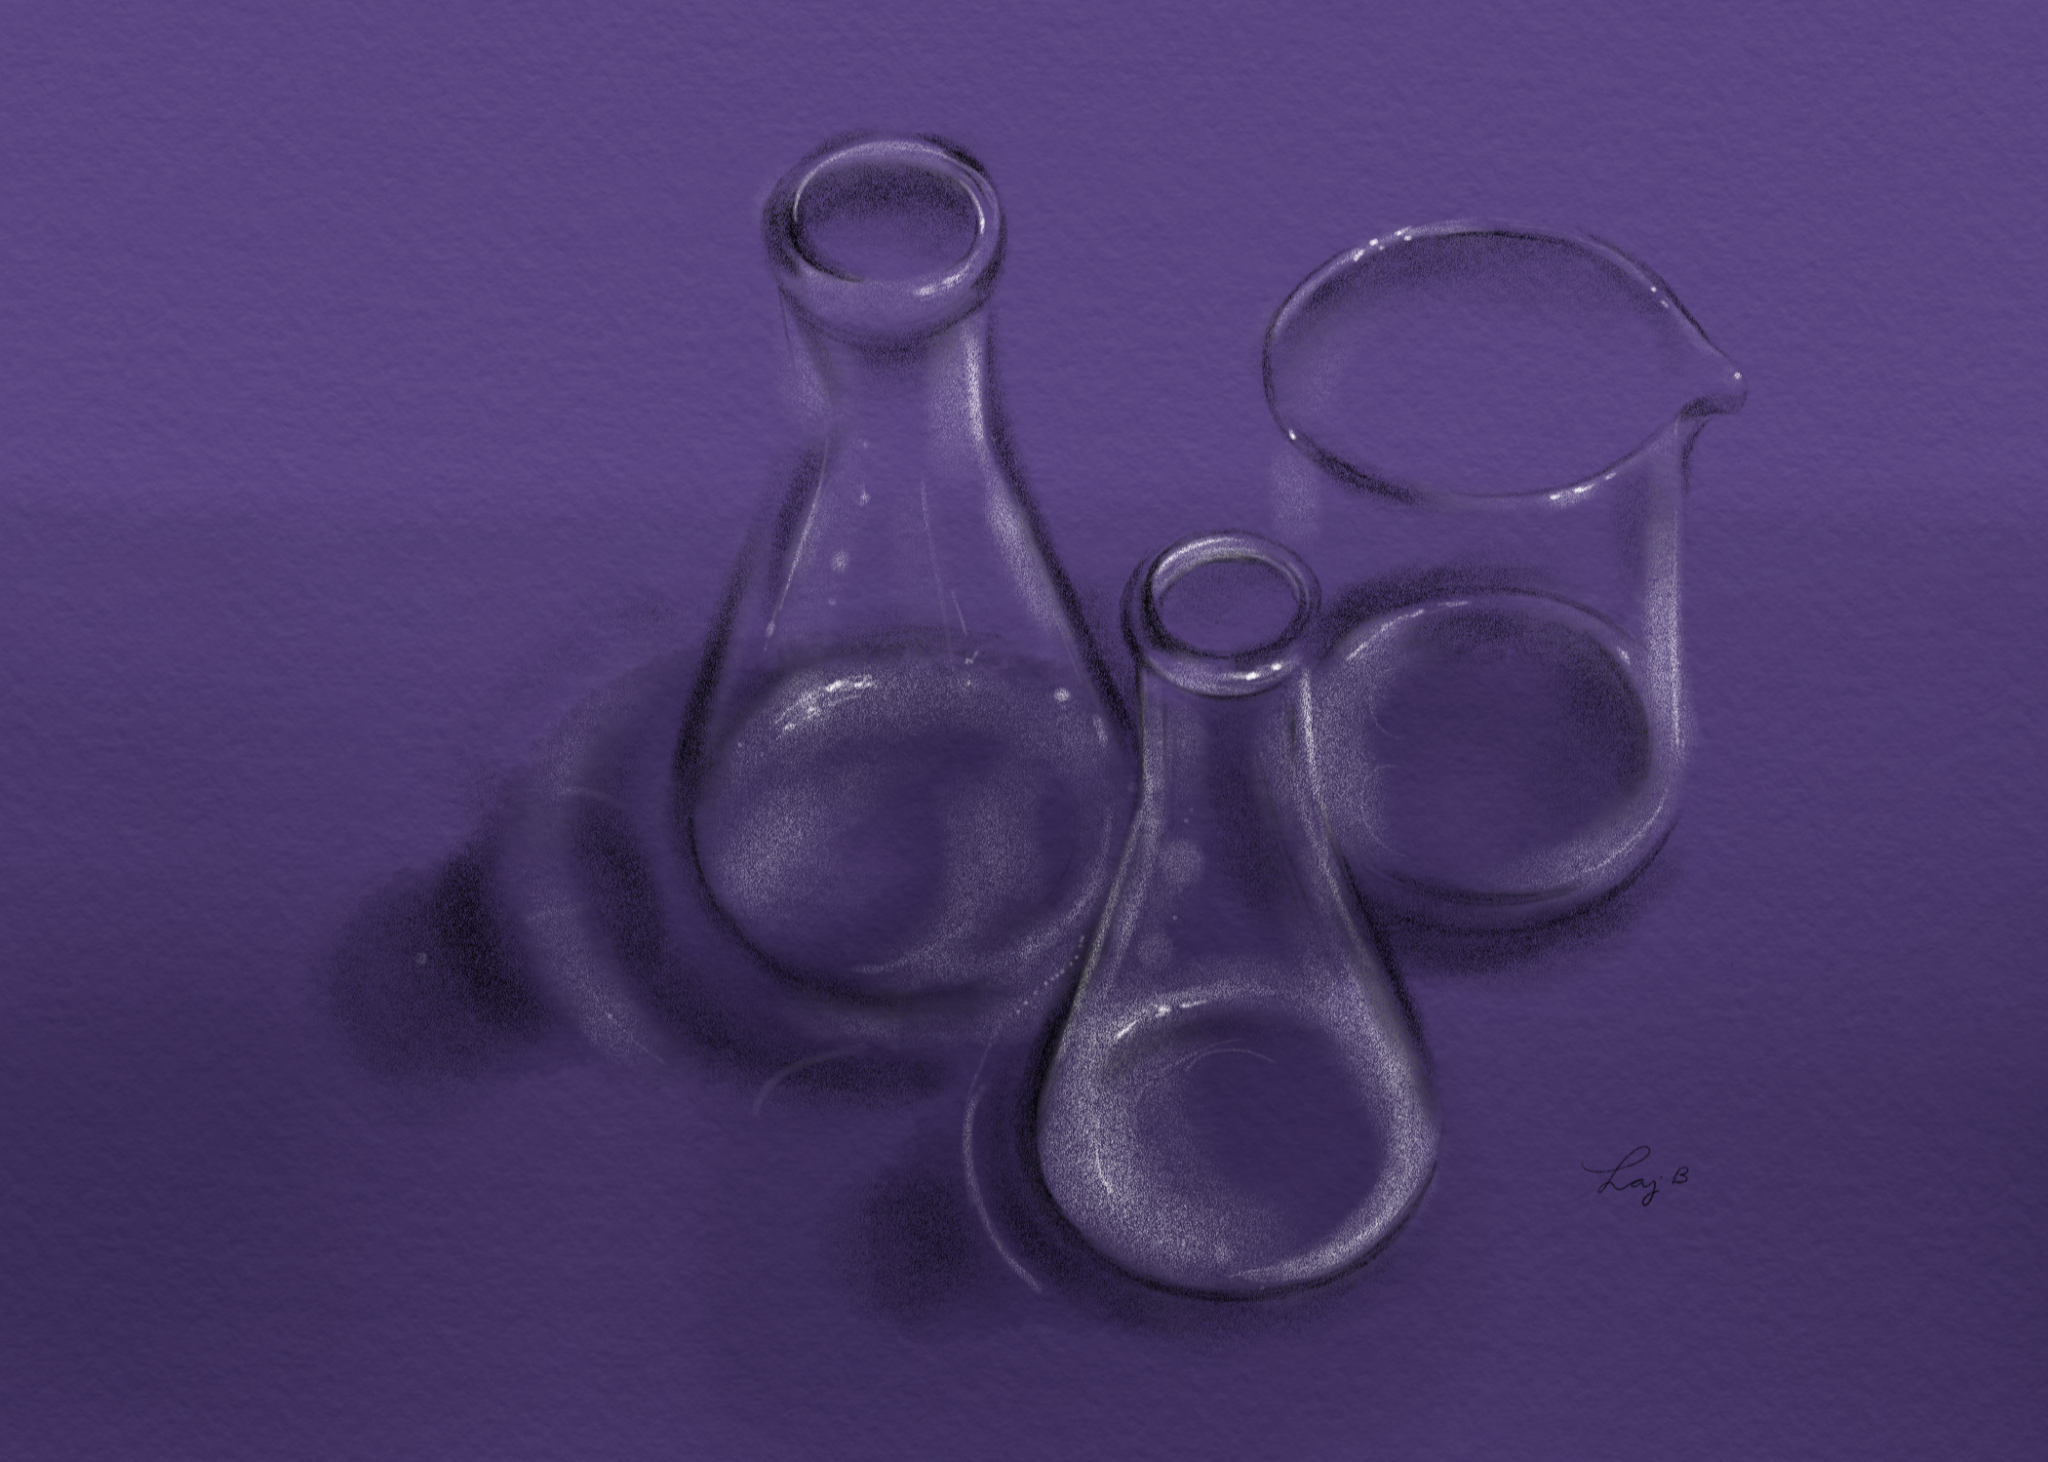 Digital sketch of laboratory glassware on Pantone's 2018 Color of the Year — Ultraviolet